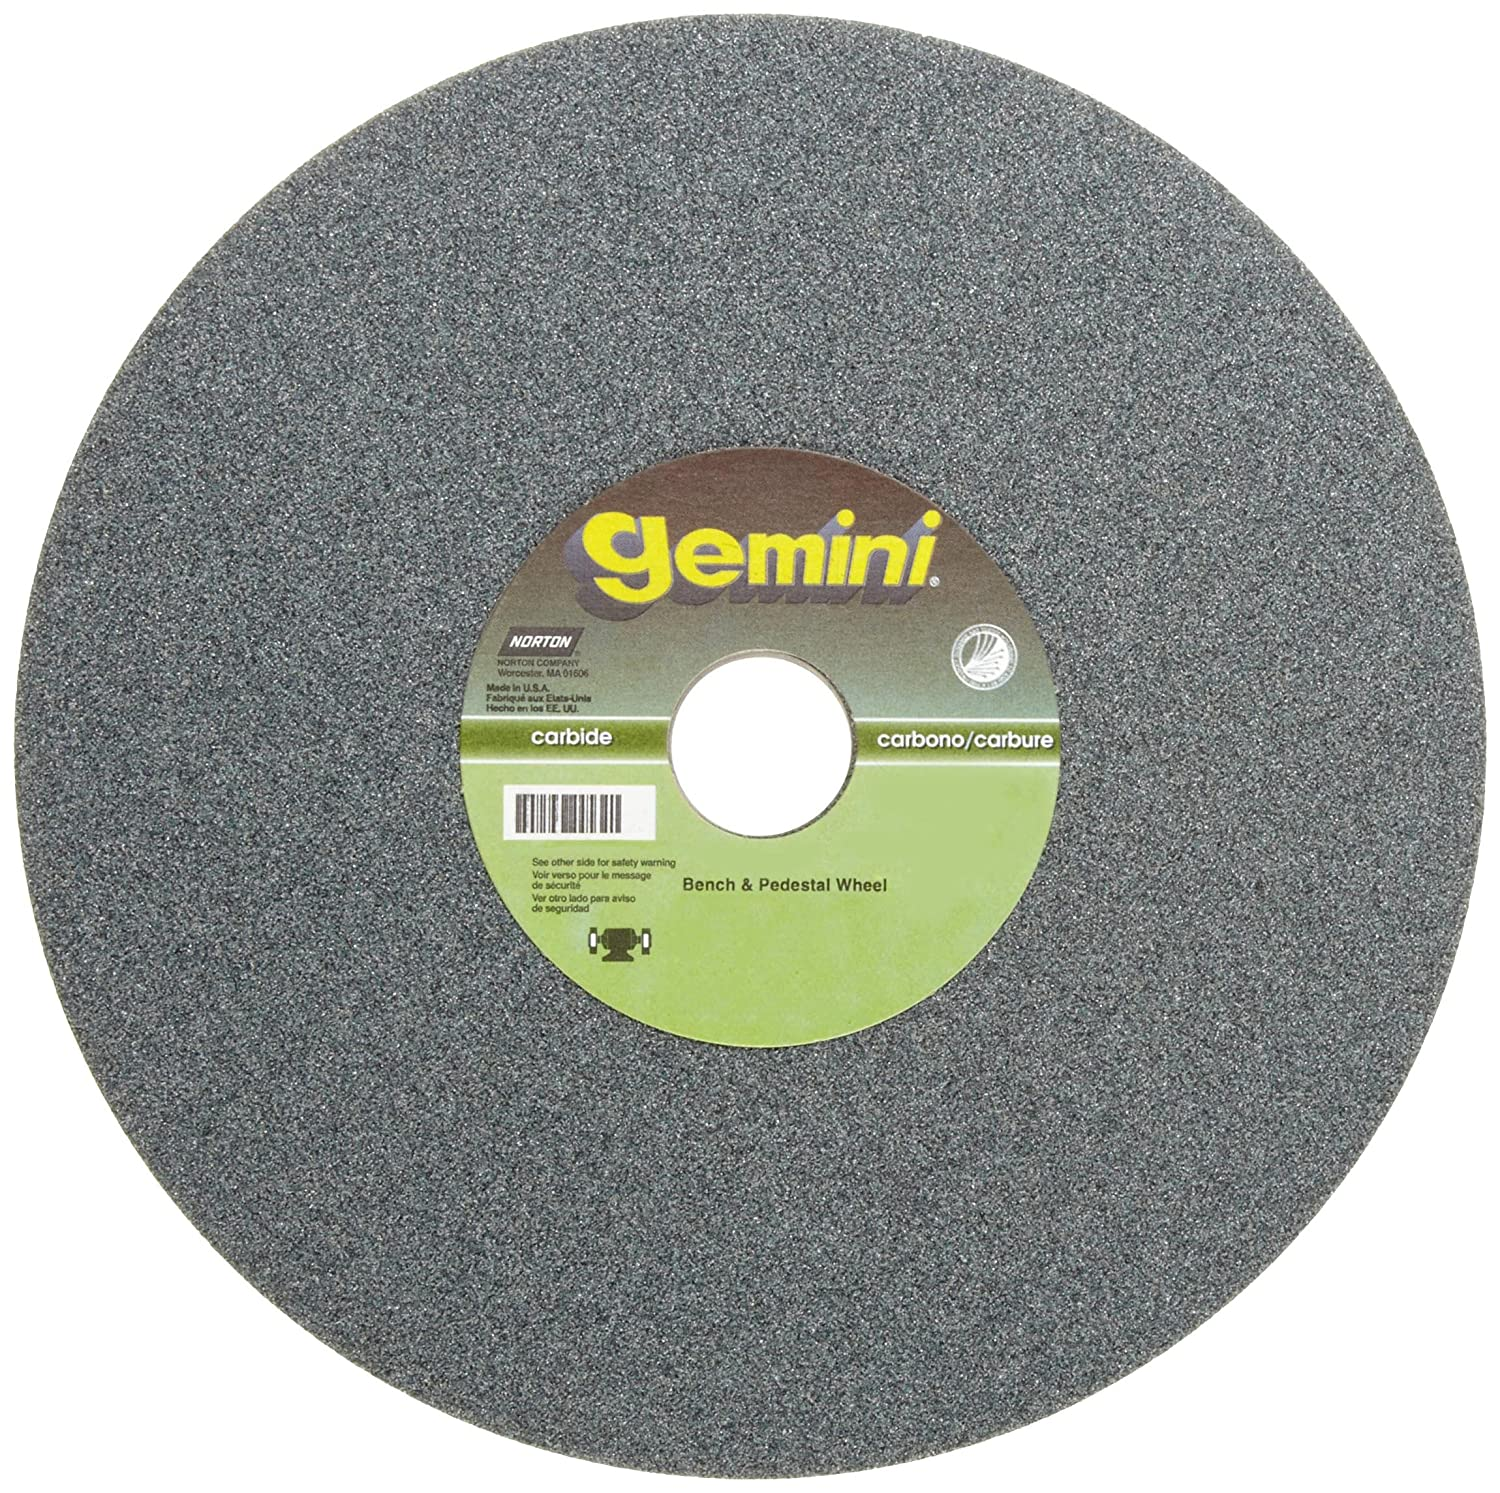 Norton Gemini Bench and Pedestal Abrasive Wheel 1-1//4 Arbor Type 01 Straight Silicon Carbide Pack of 1 80 Grit 10 Diameter 1 Thickness